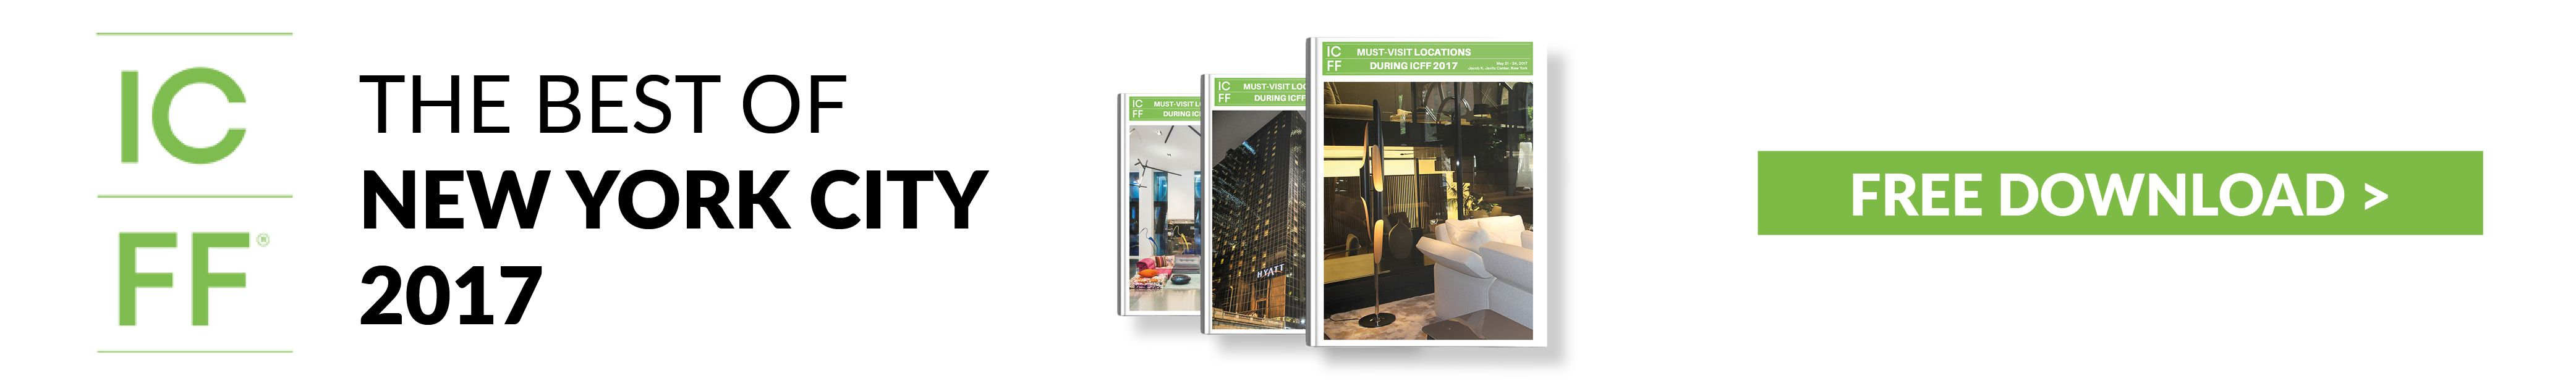 Brabbu Announces A Complete Guide For ICFF 2017 & New York Design Week ➤ To see more news about Luxury Bathrooms in the world visit us at http://luxurybathrooms.eu/ #bathroom #interiordesign #homedecor #icff2017 @BathroomsLuxury @koket @bocadolobo @delightfulll @brabbu @essentialhomeeu @circudesign @mvalentinabath @luxxu @covethouse_ icff 2017 Brabbu Announces A Complete Guide For ICFF 2017 & New York Design Week ICFF1 banner home